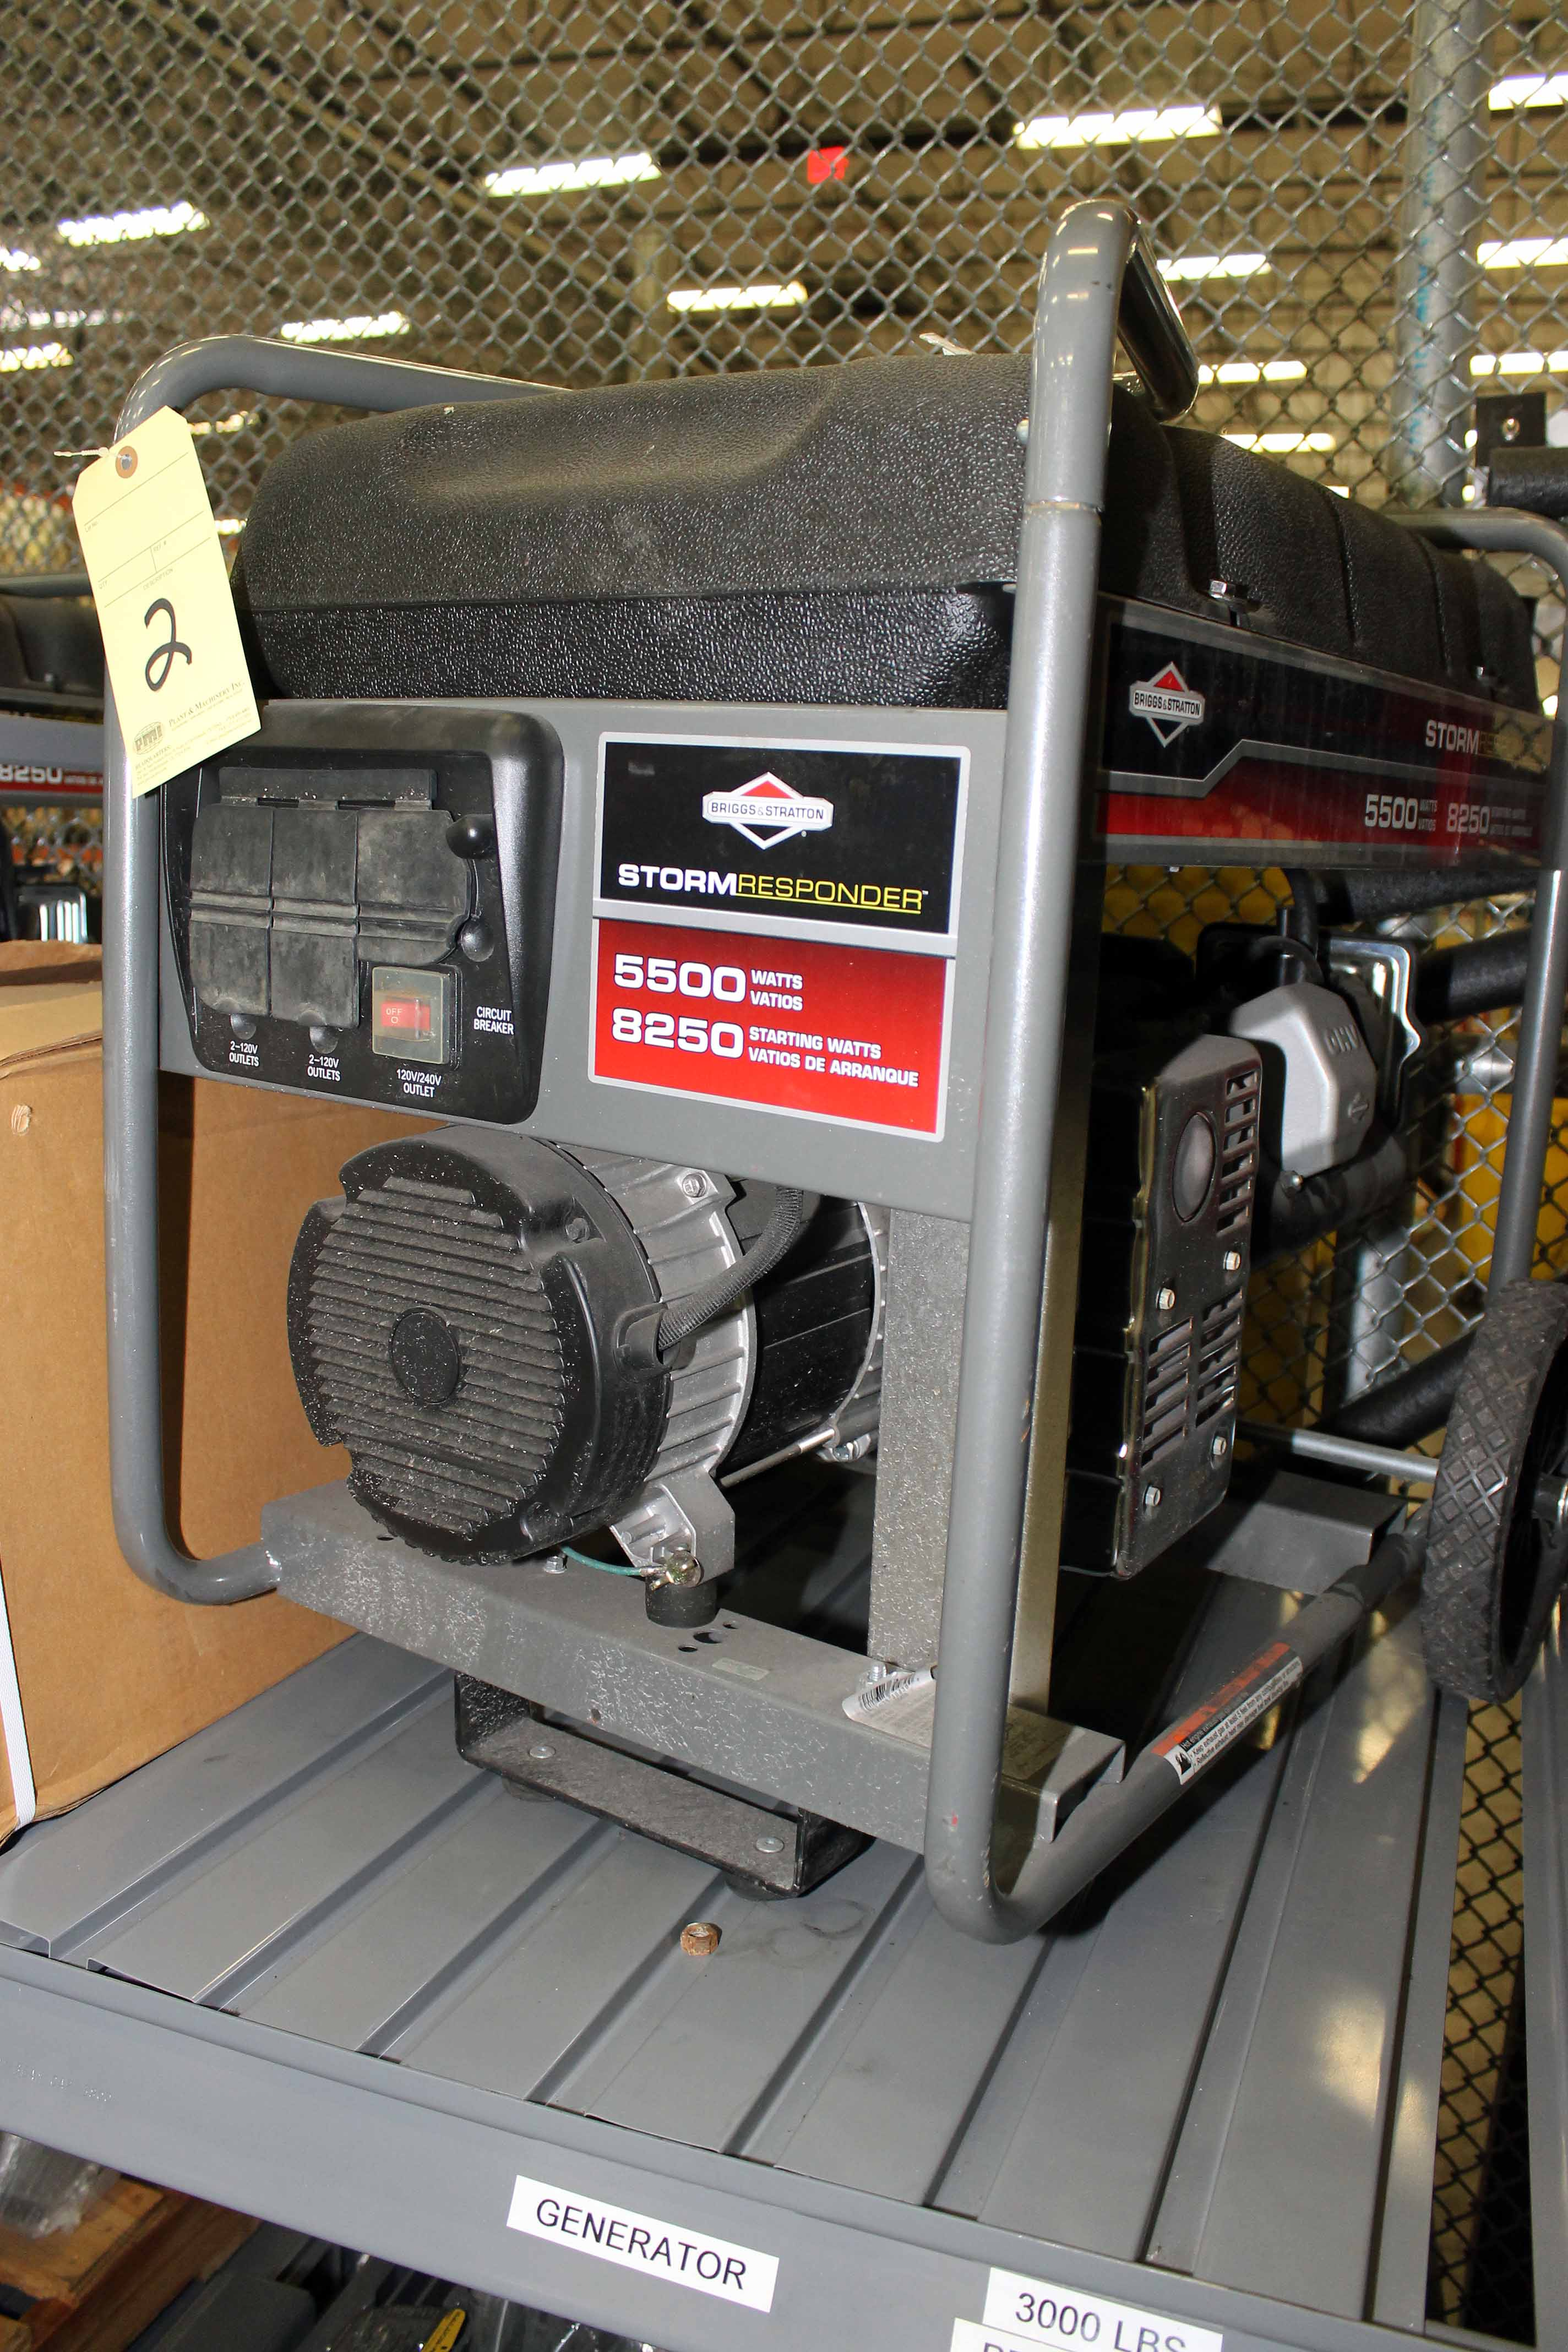 Lot 2 - PORTABLE GENERATOR, STORM RESPONDER, 5,500 watt, gasoline pwrd. (Location 1 - Techway)